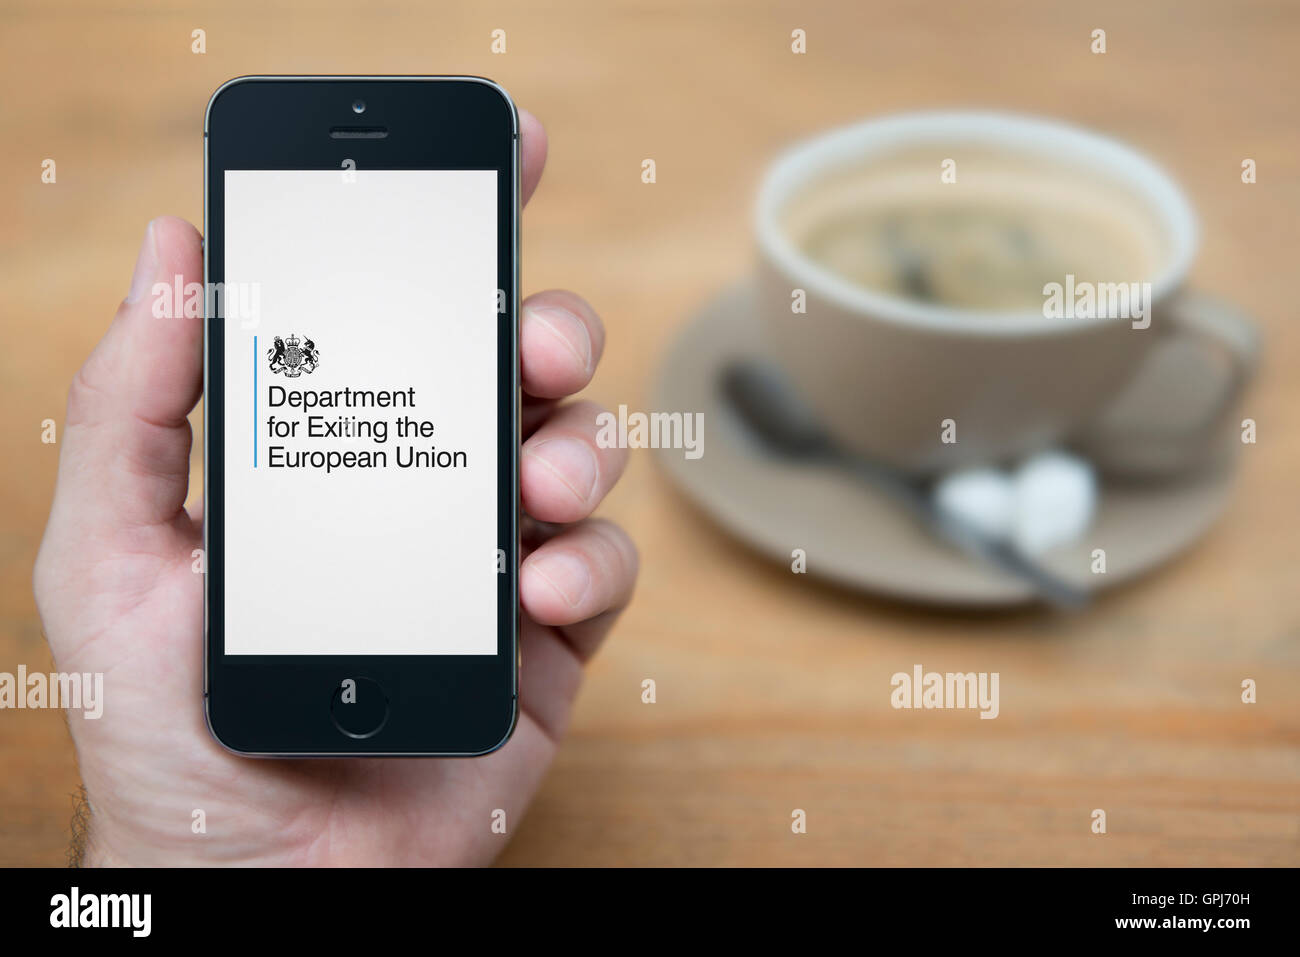 A man looks at his iPhone which displays the UK Government Department for Exiting the European Union logo (Editorial - Stock Image